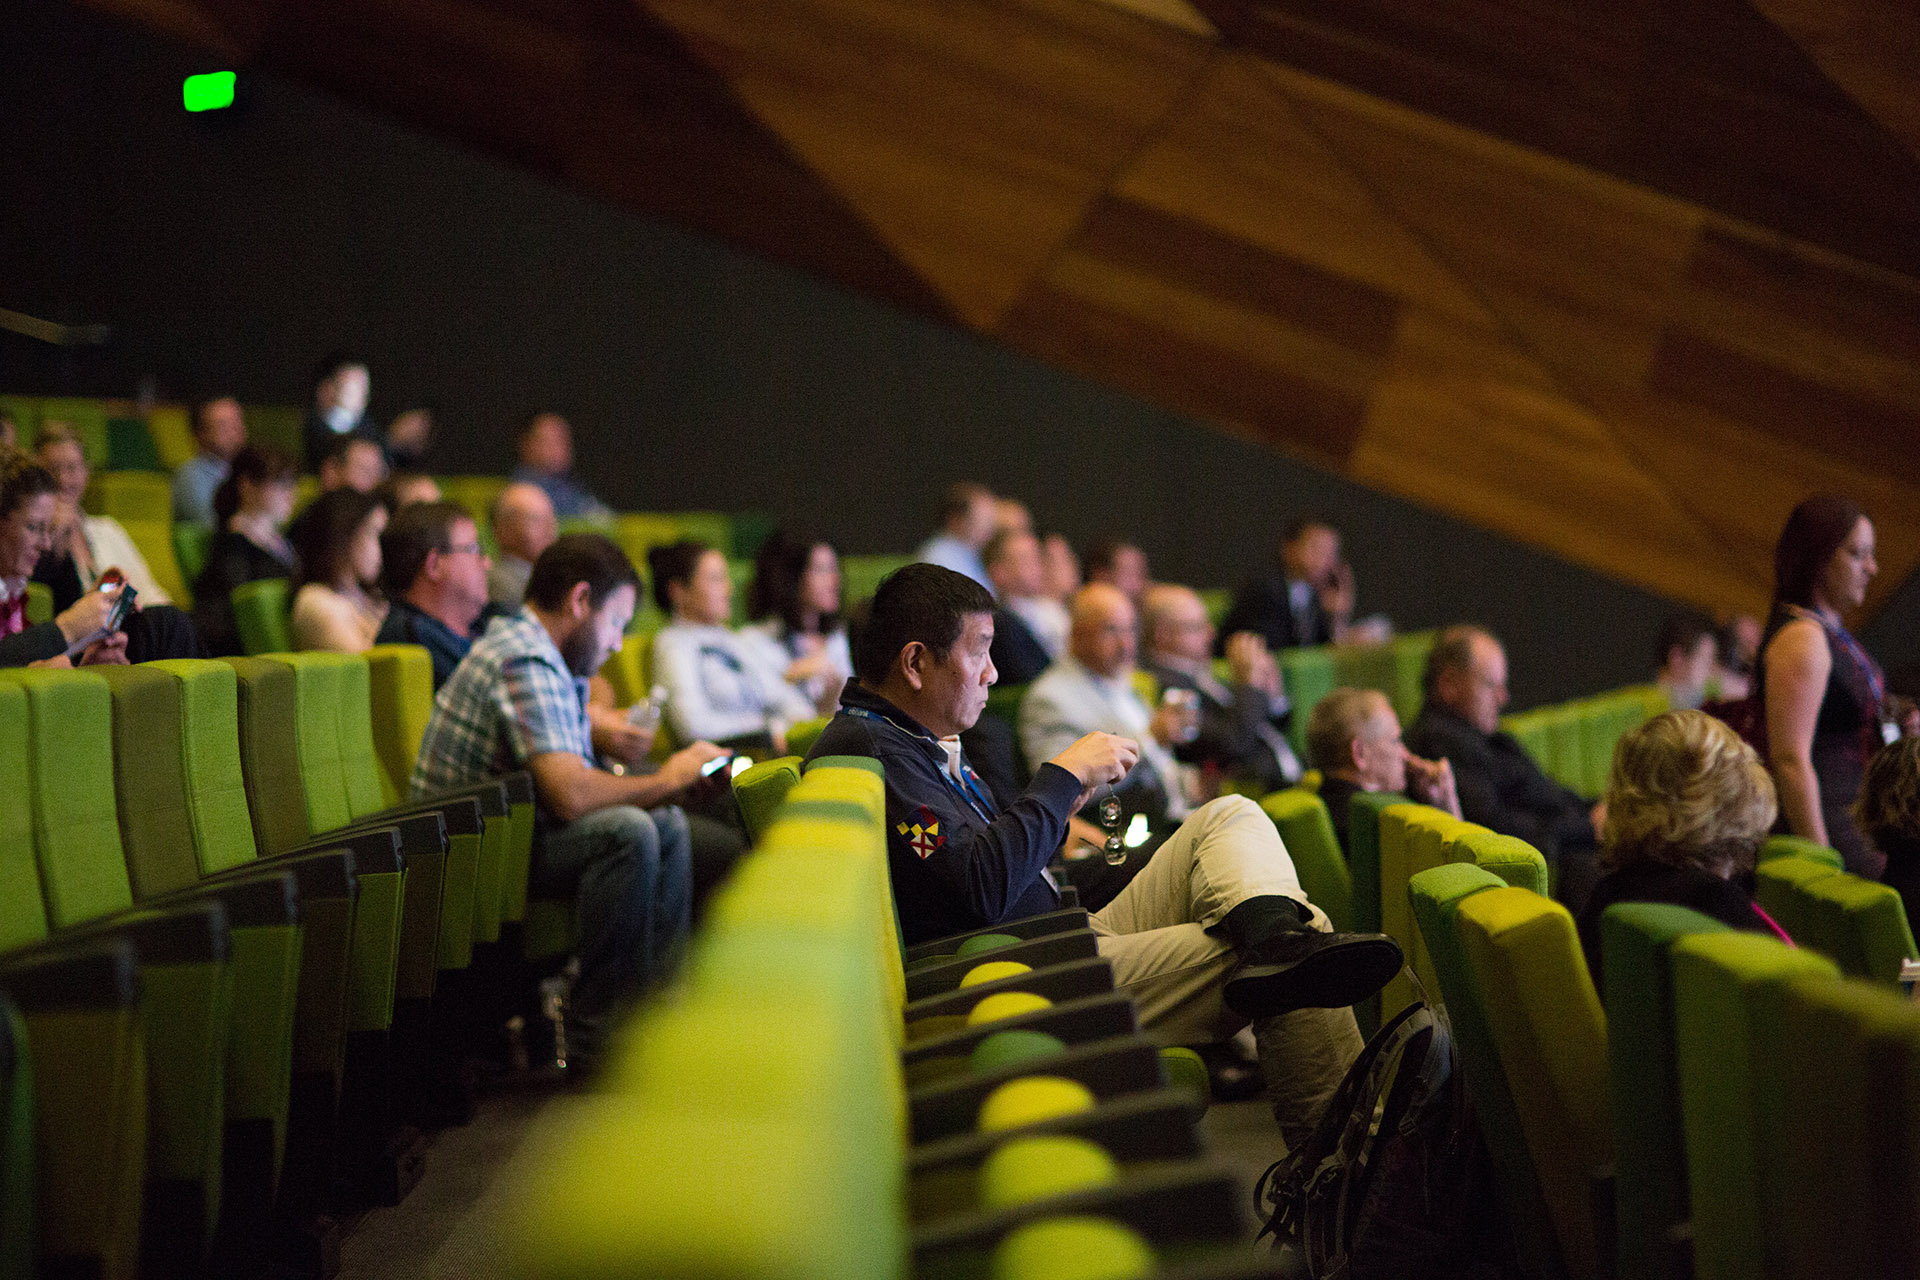 conference audience photography